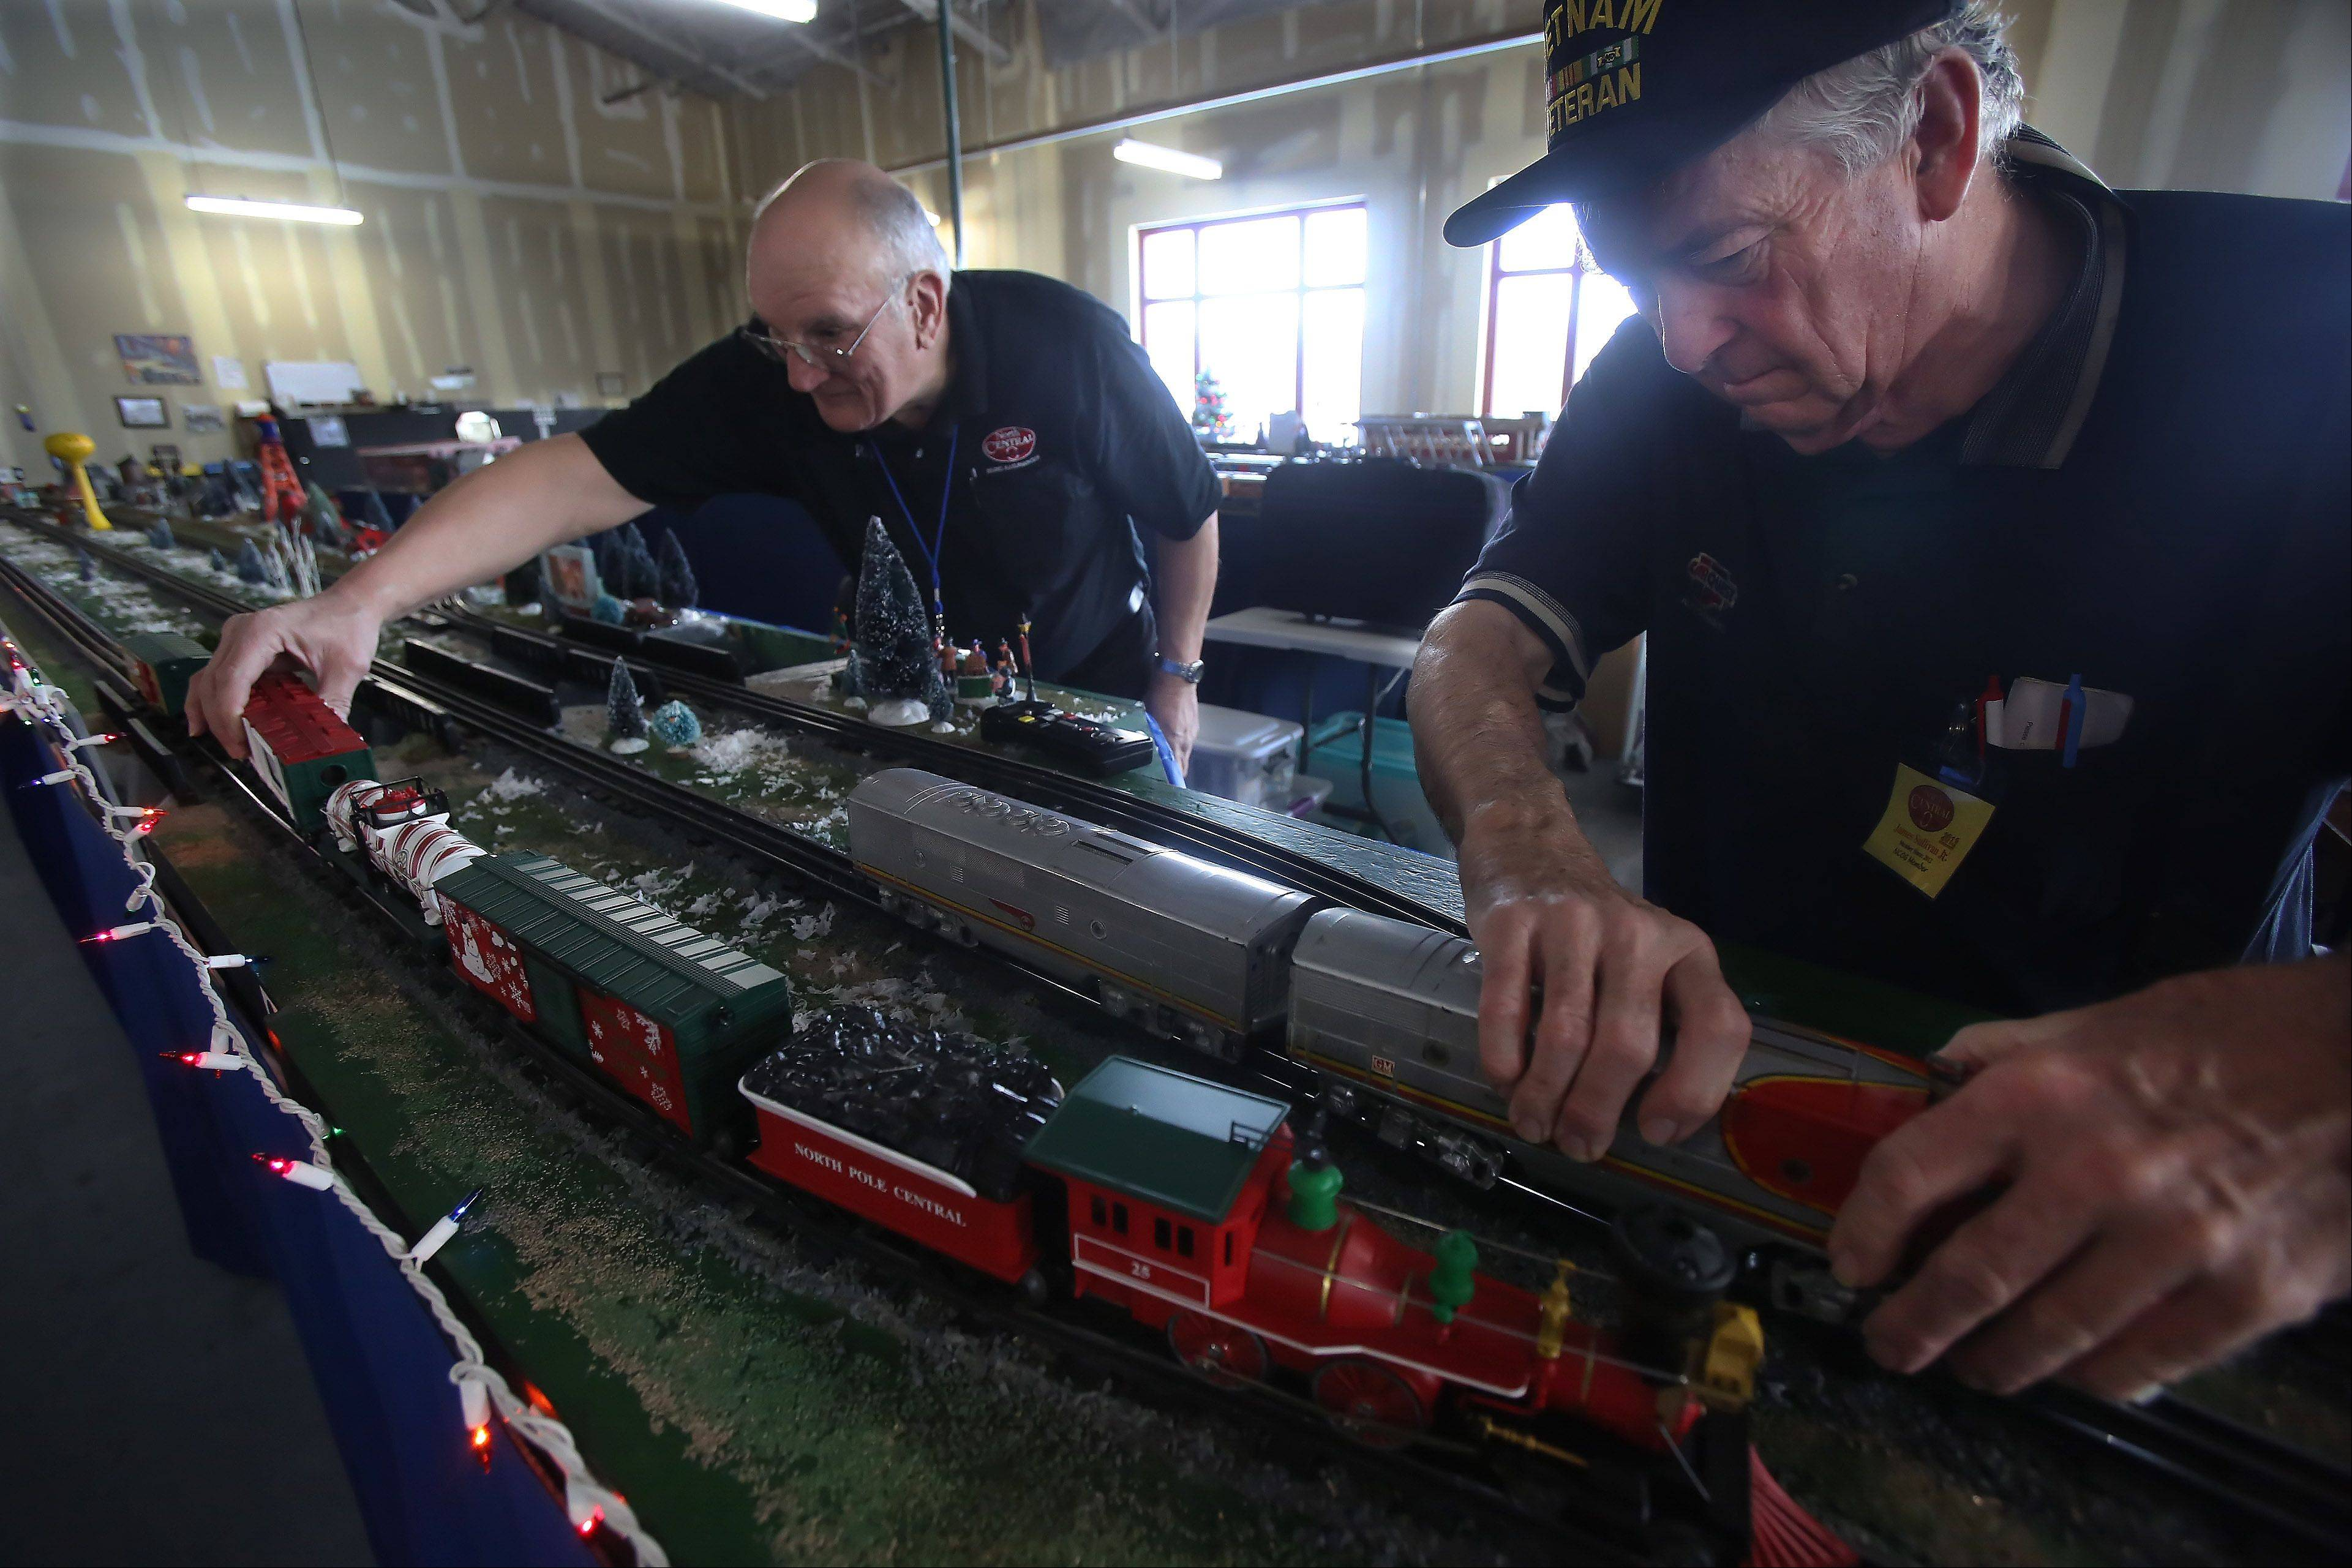 Model railroad operators Rip Paterson of Grayslake, left, and James Sullivan Jr. of Highland Park set up the North Pole Central during a Christmas-themed model train display Sunday at Fremont Public Library in Mundelein. The event was sponsored by the North Central O Gaugers Model Railroad Club, Inc. Children and families watched as trains passed by snow-covered towns and holiday crowds.